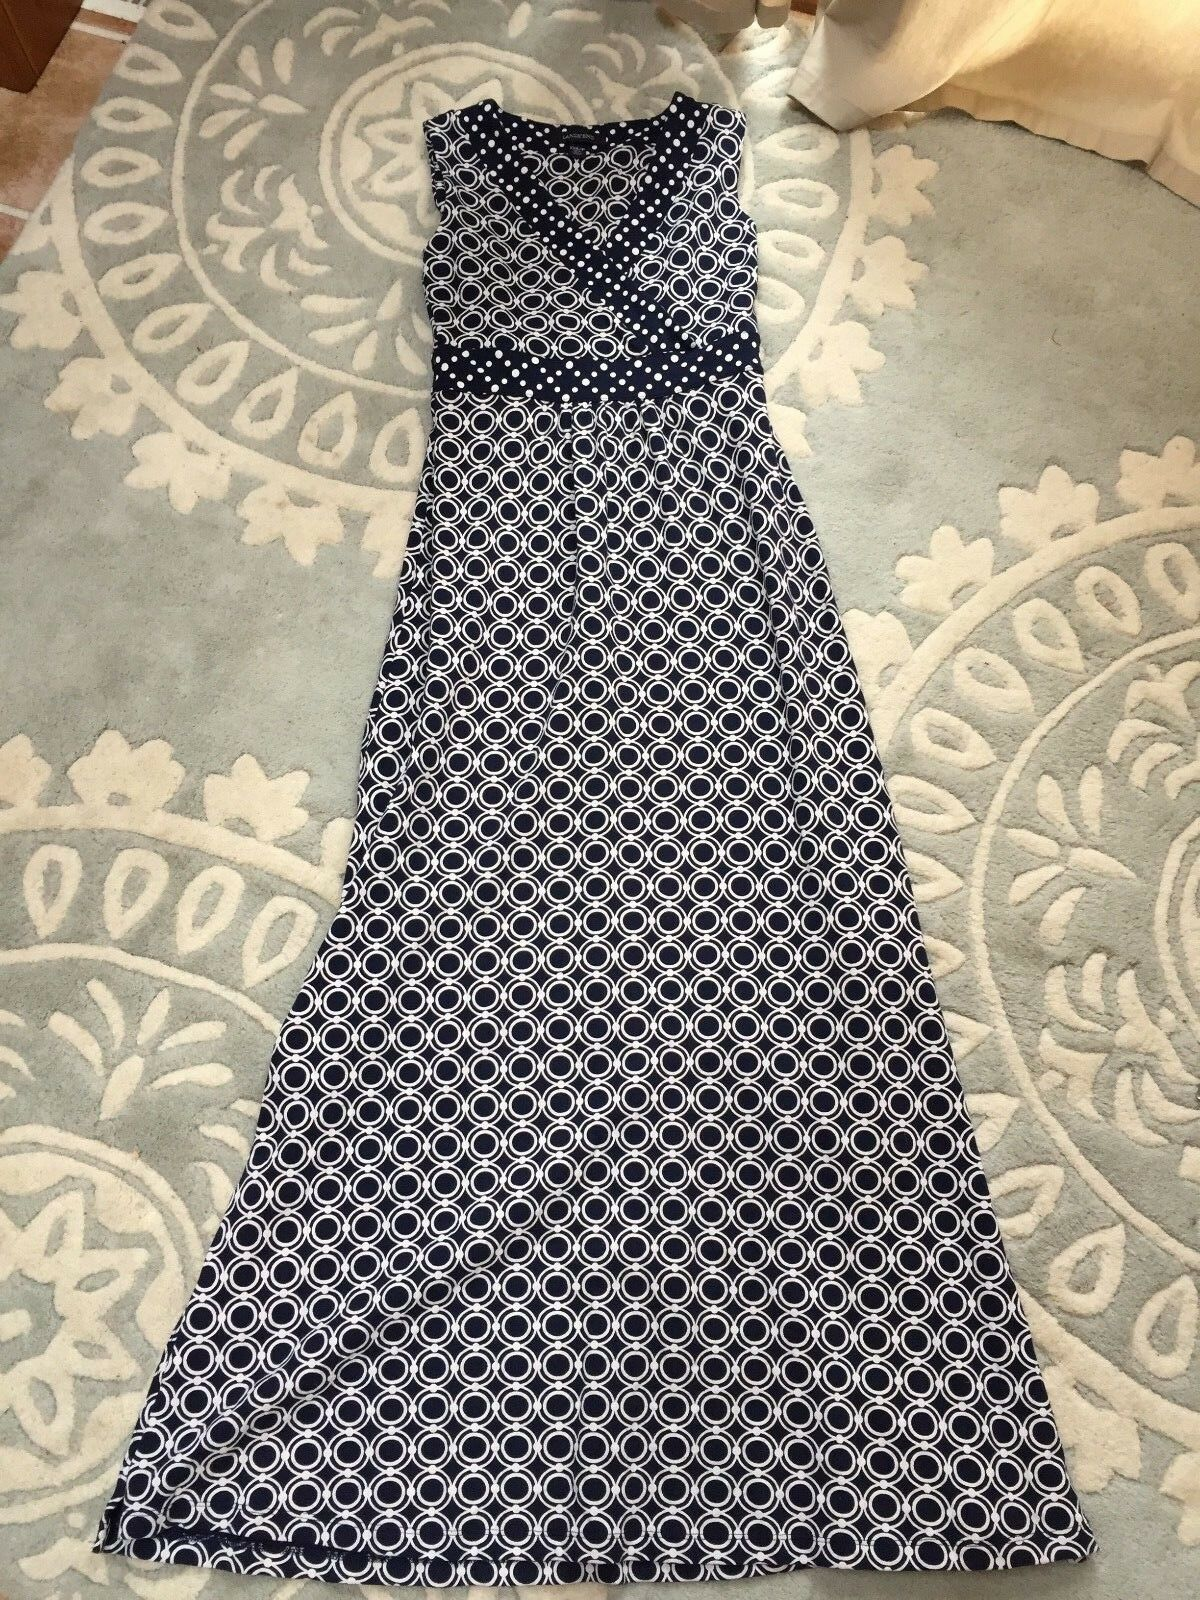 Lands' End Mod Navy bluee White Circle Print Maxi Dress Surplice Bodice XXS 2XS